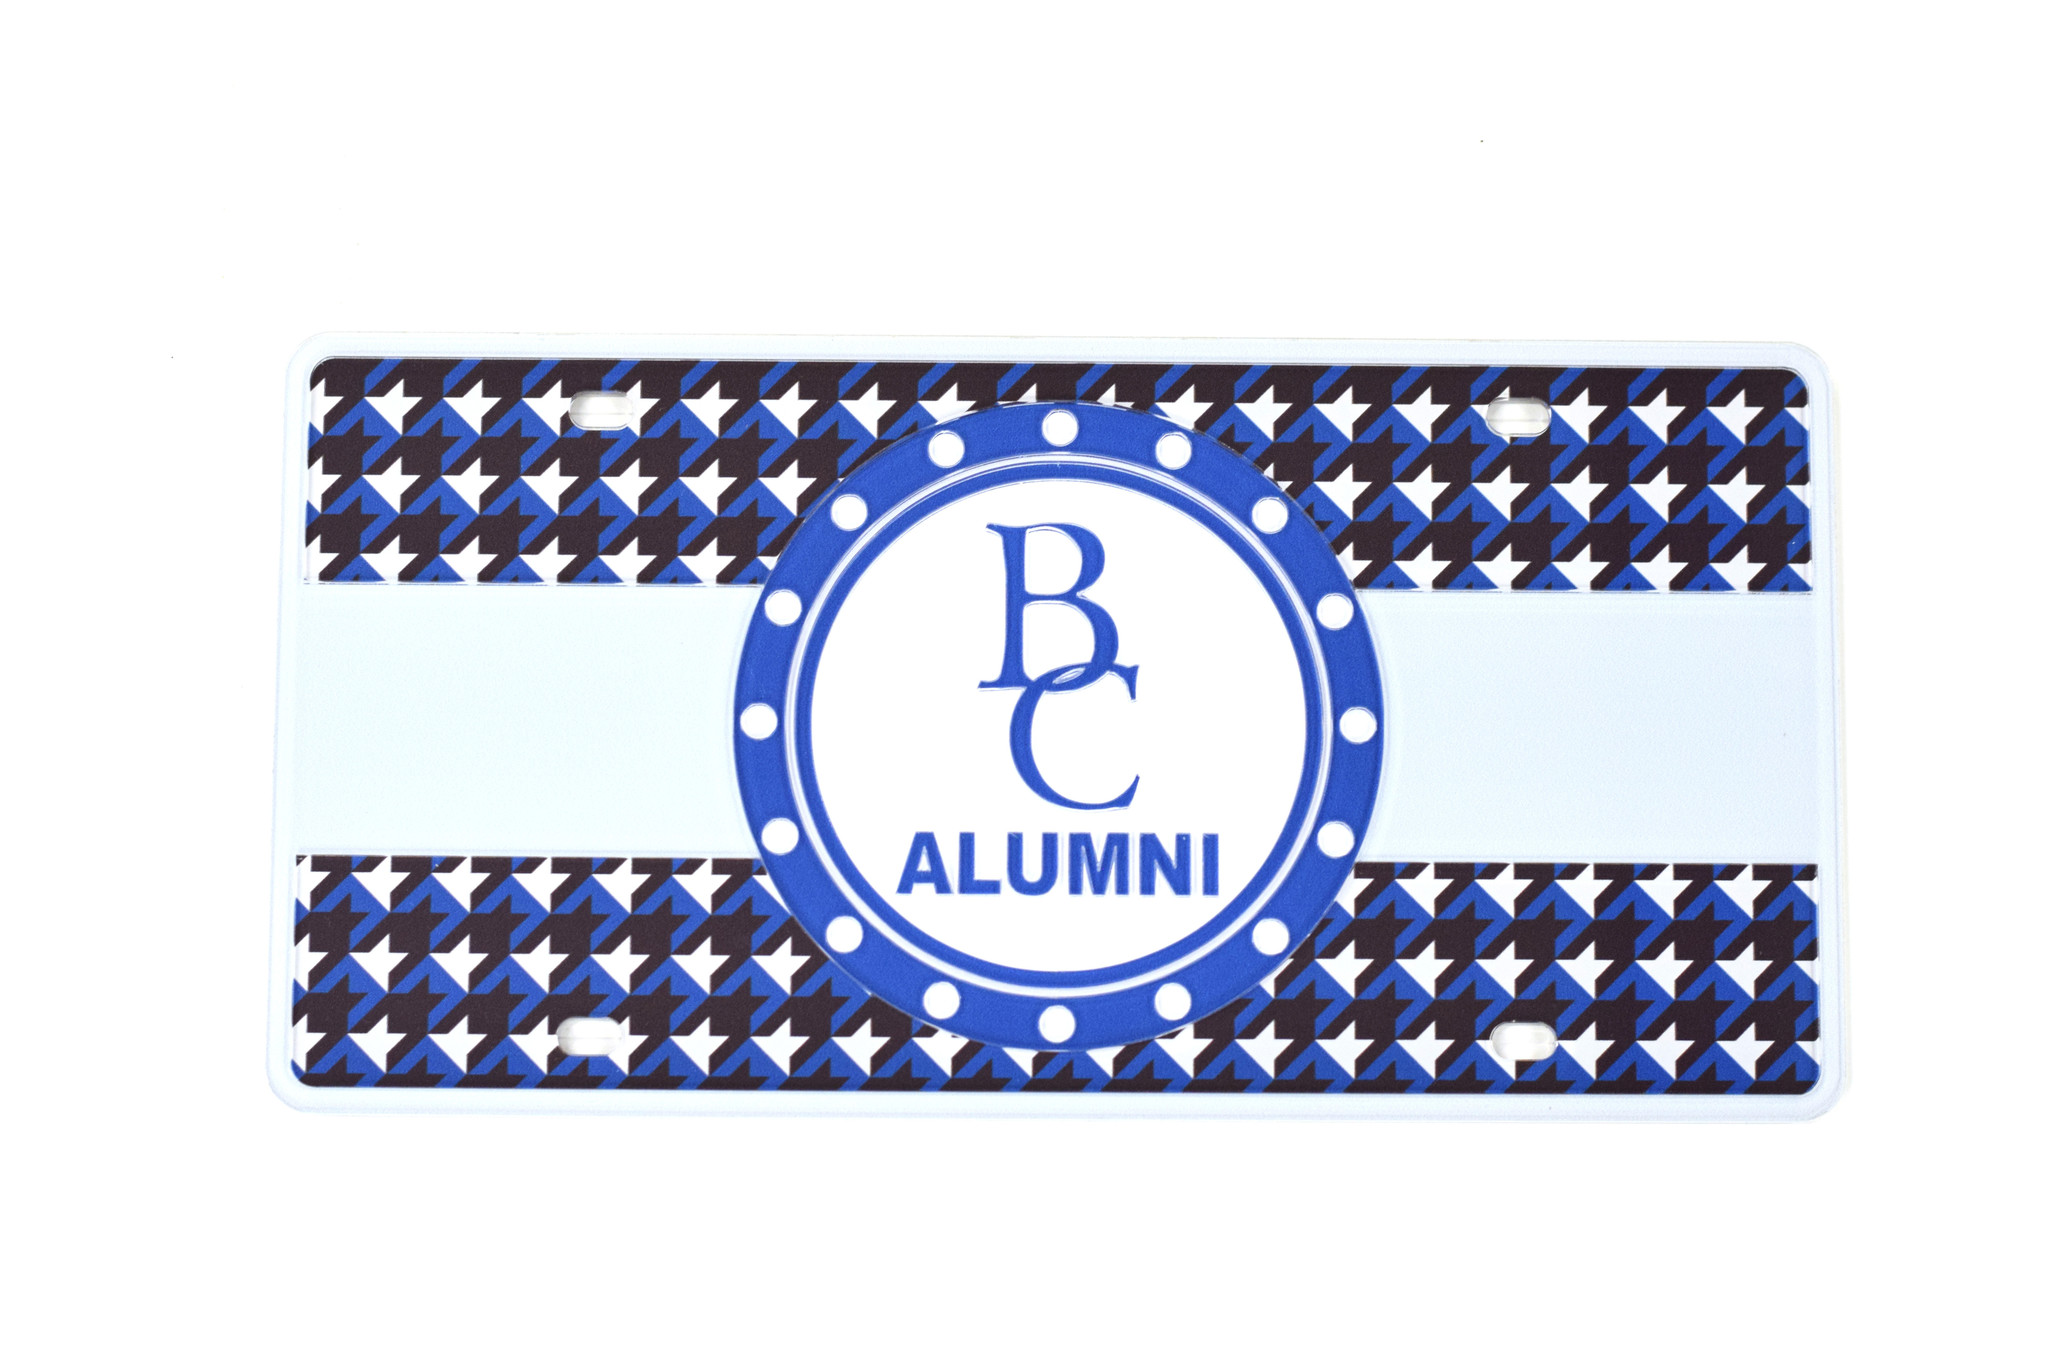 Alumni Hounds-Tooth License Plate-1